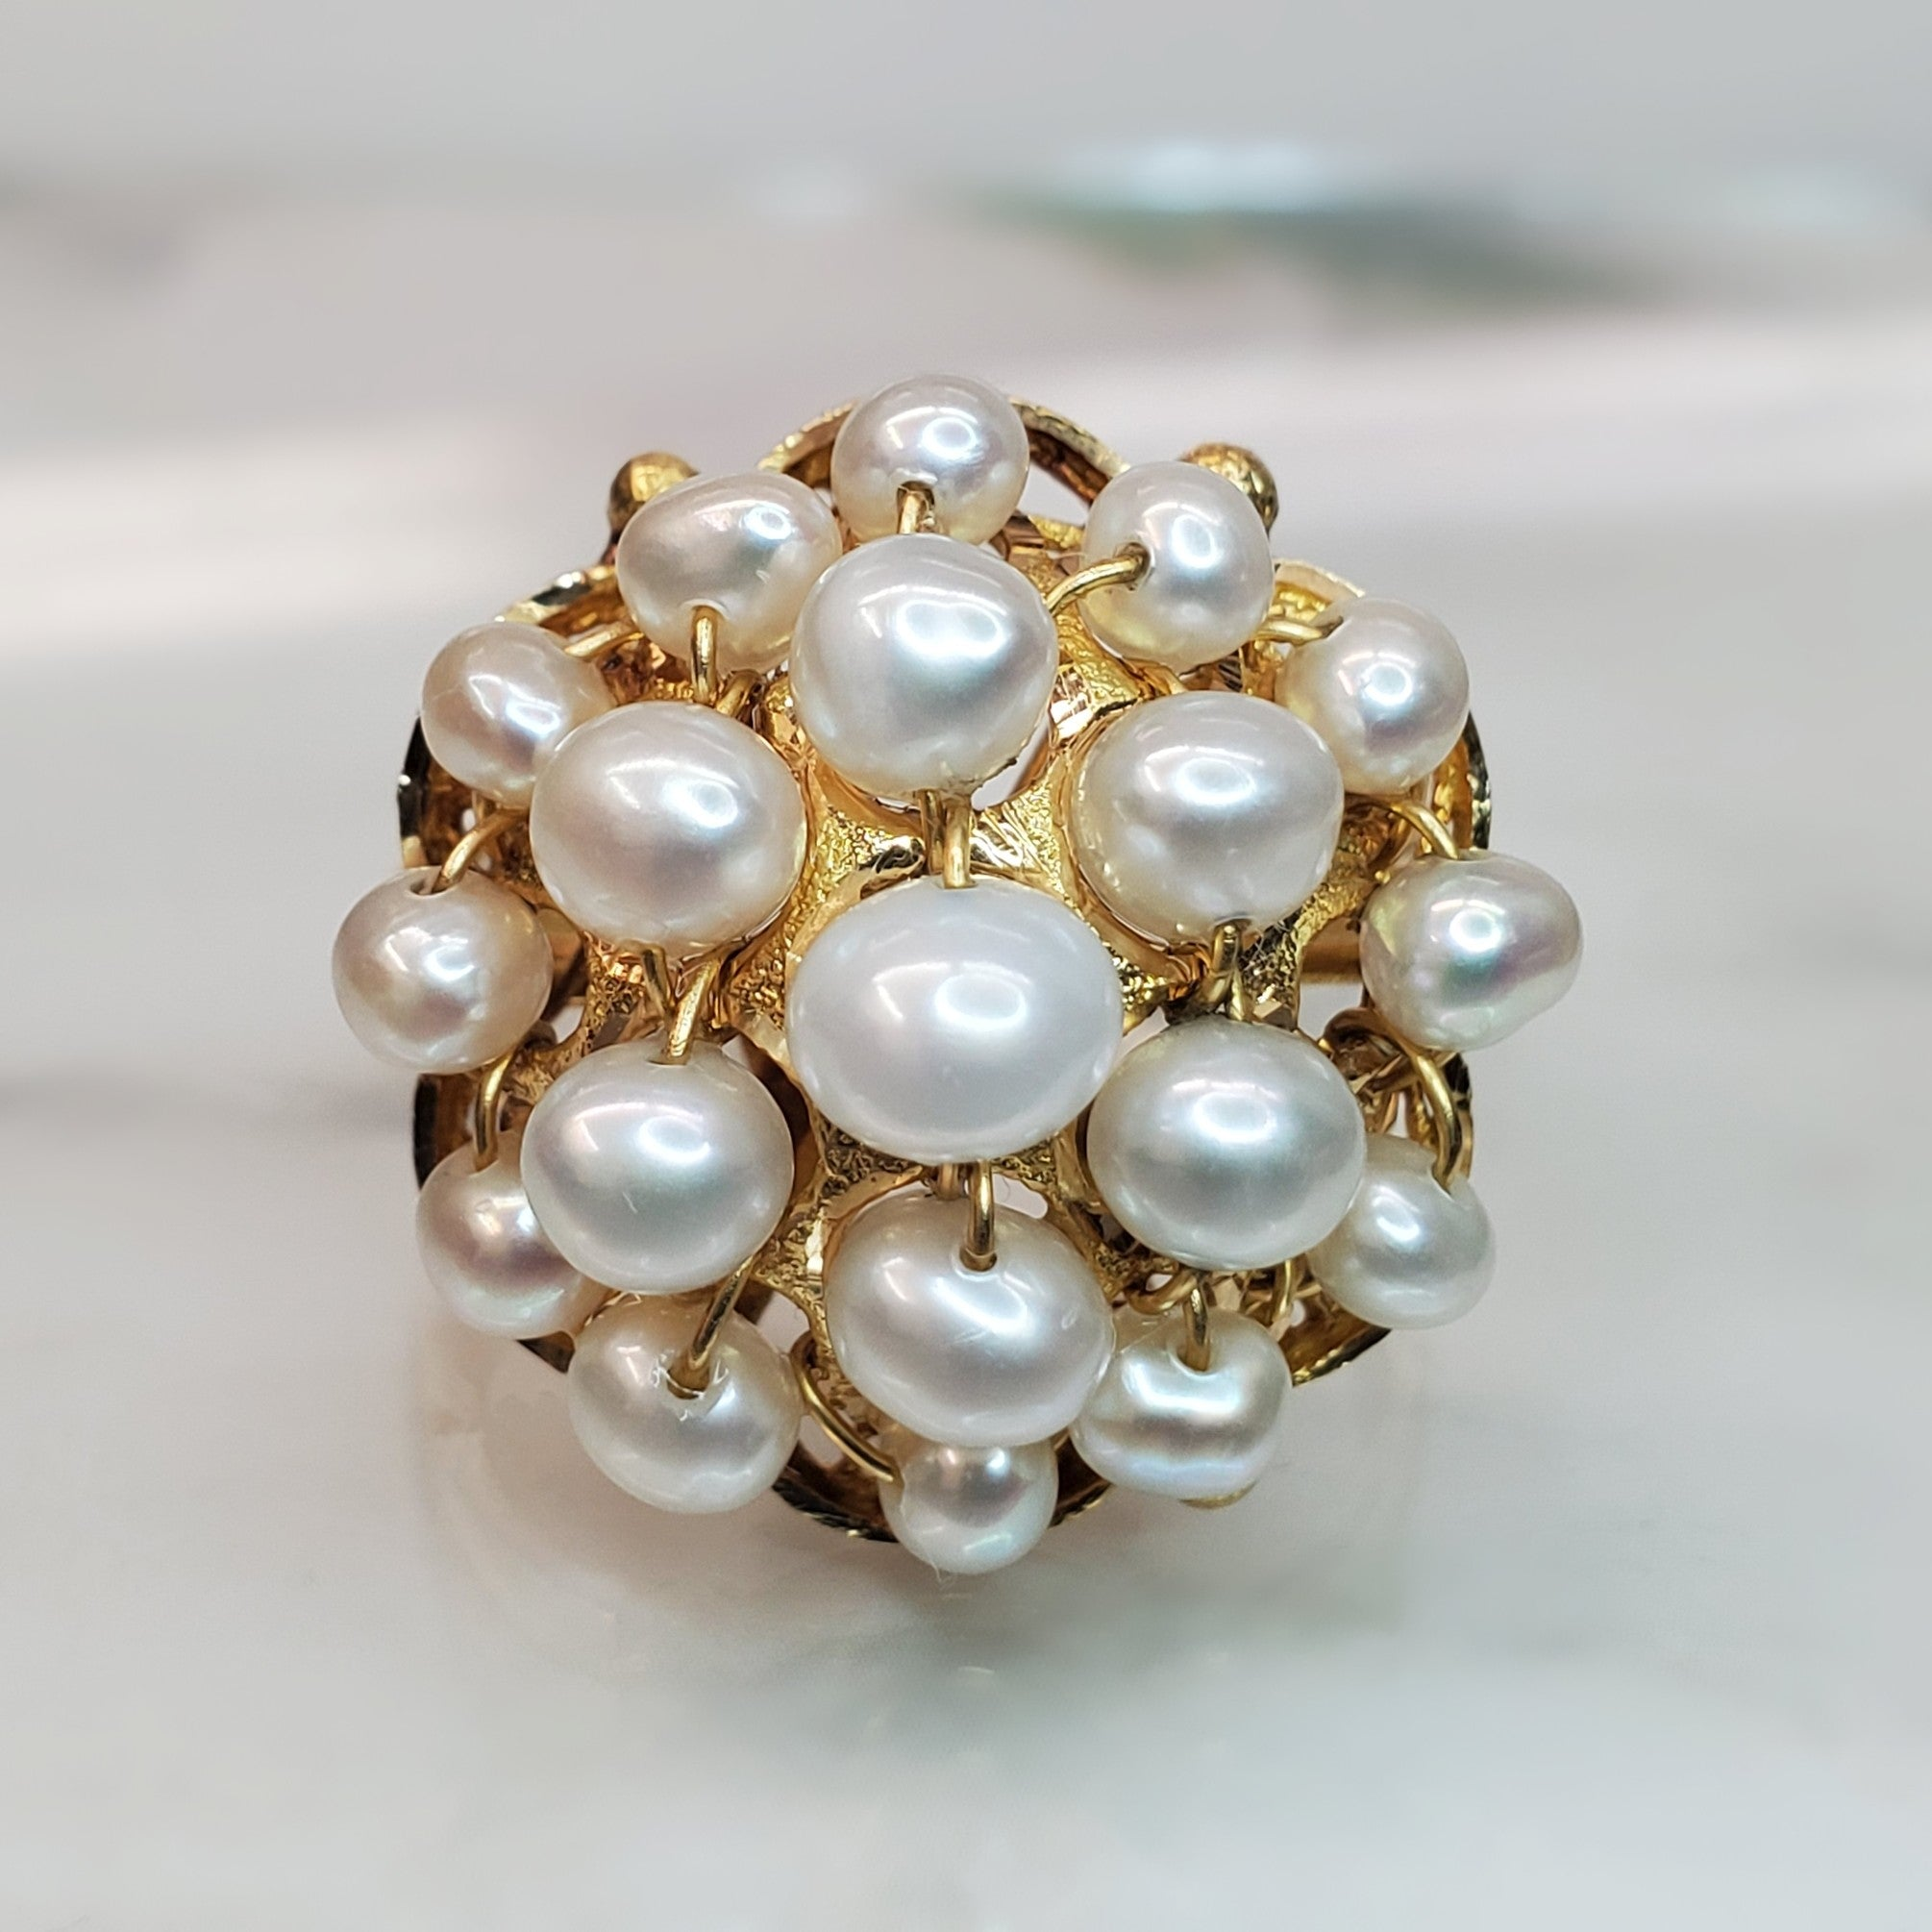 18 karat yellow gold, pearl cluster, estate ring